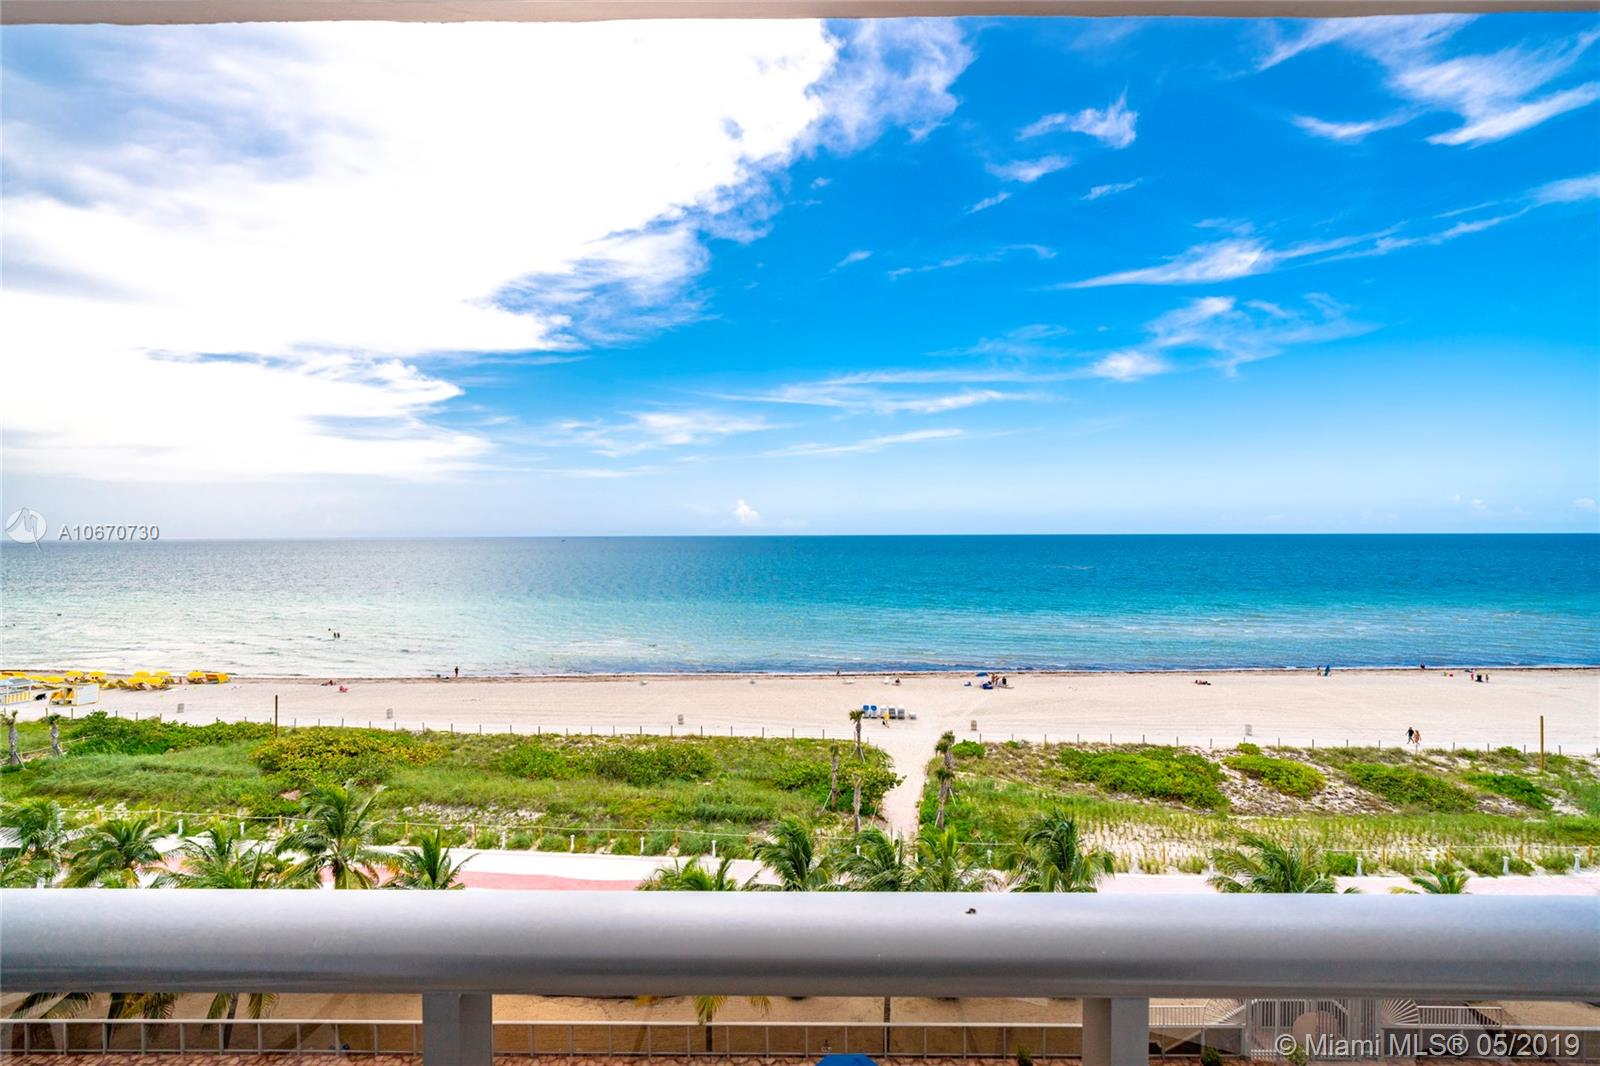 Maison Grande #817 - 6039 Collins Ave #817, Miami Beach, FL 33140